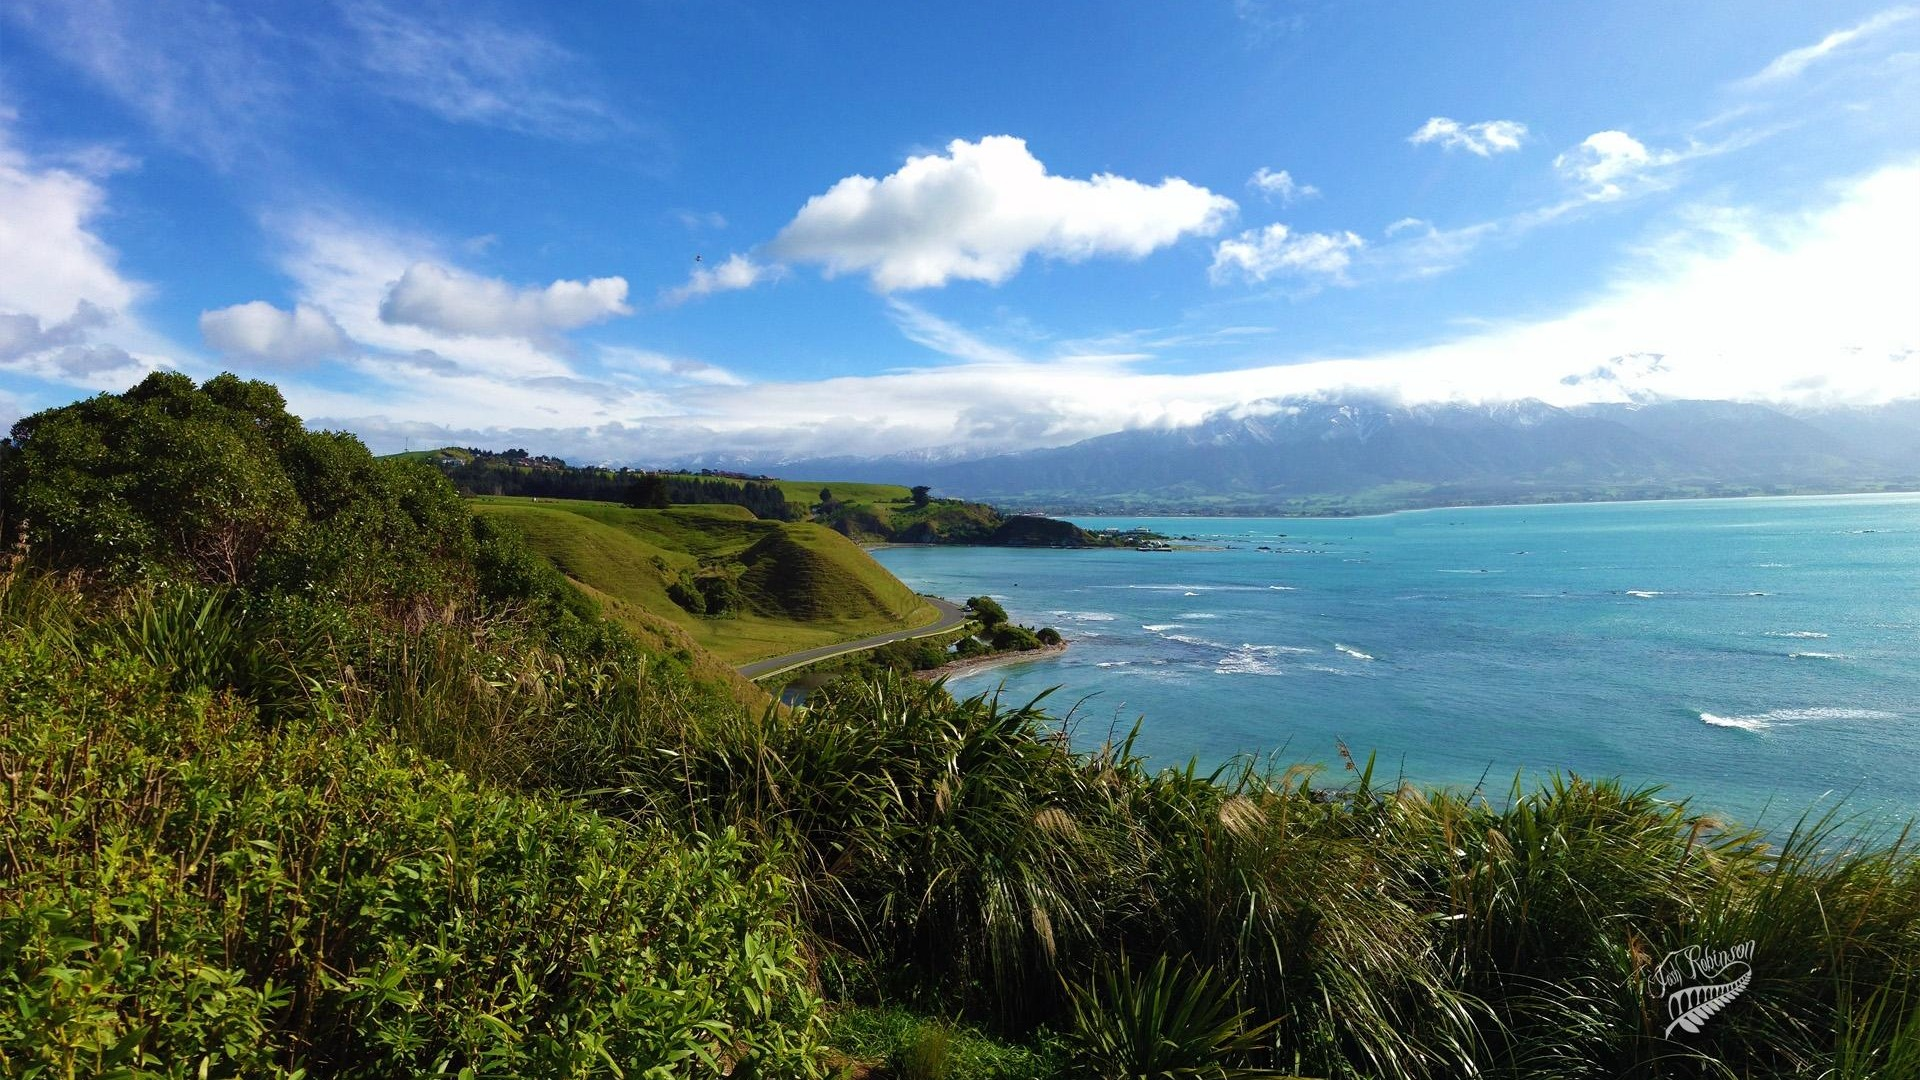 New Zealand Panoramic Hd Desktop Wallpaper 04 Preview